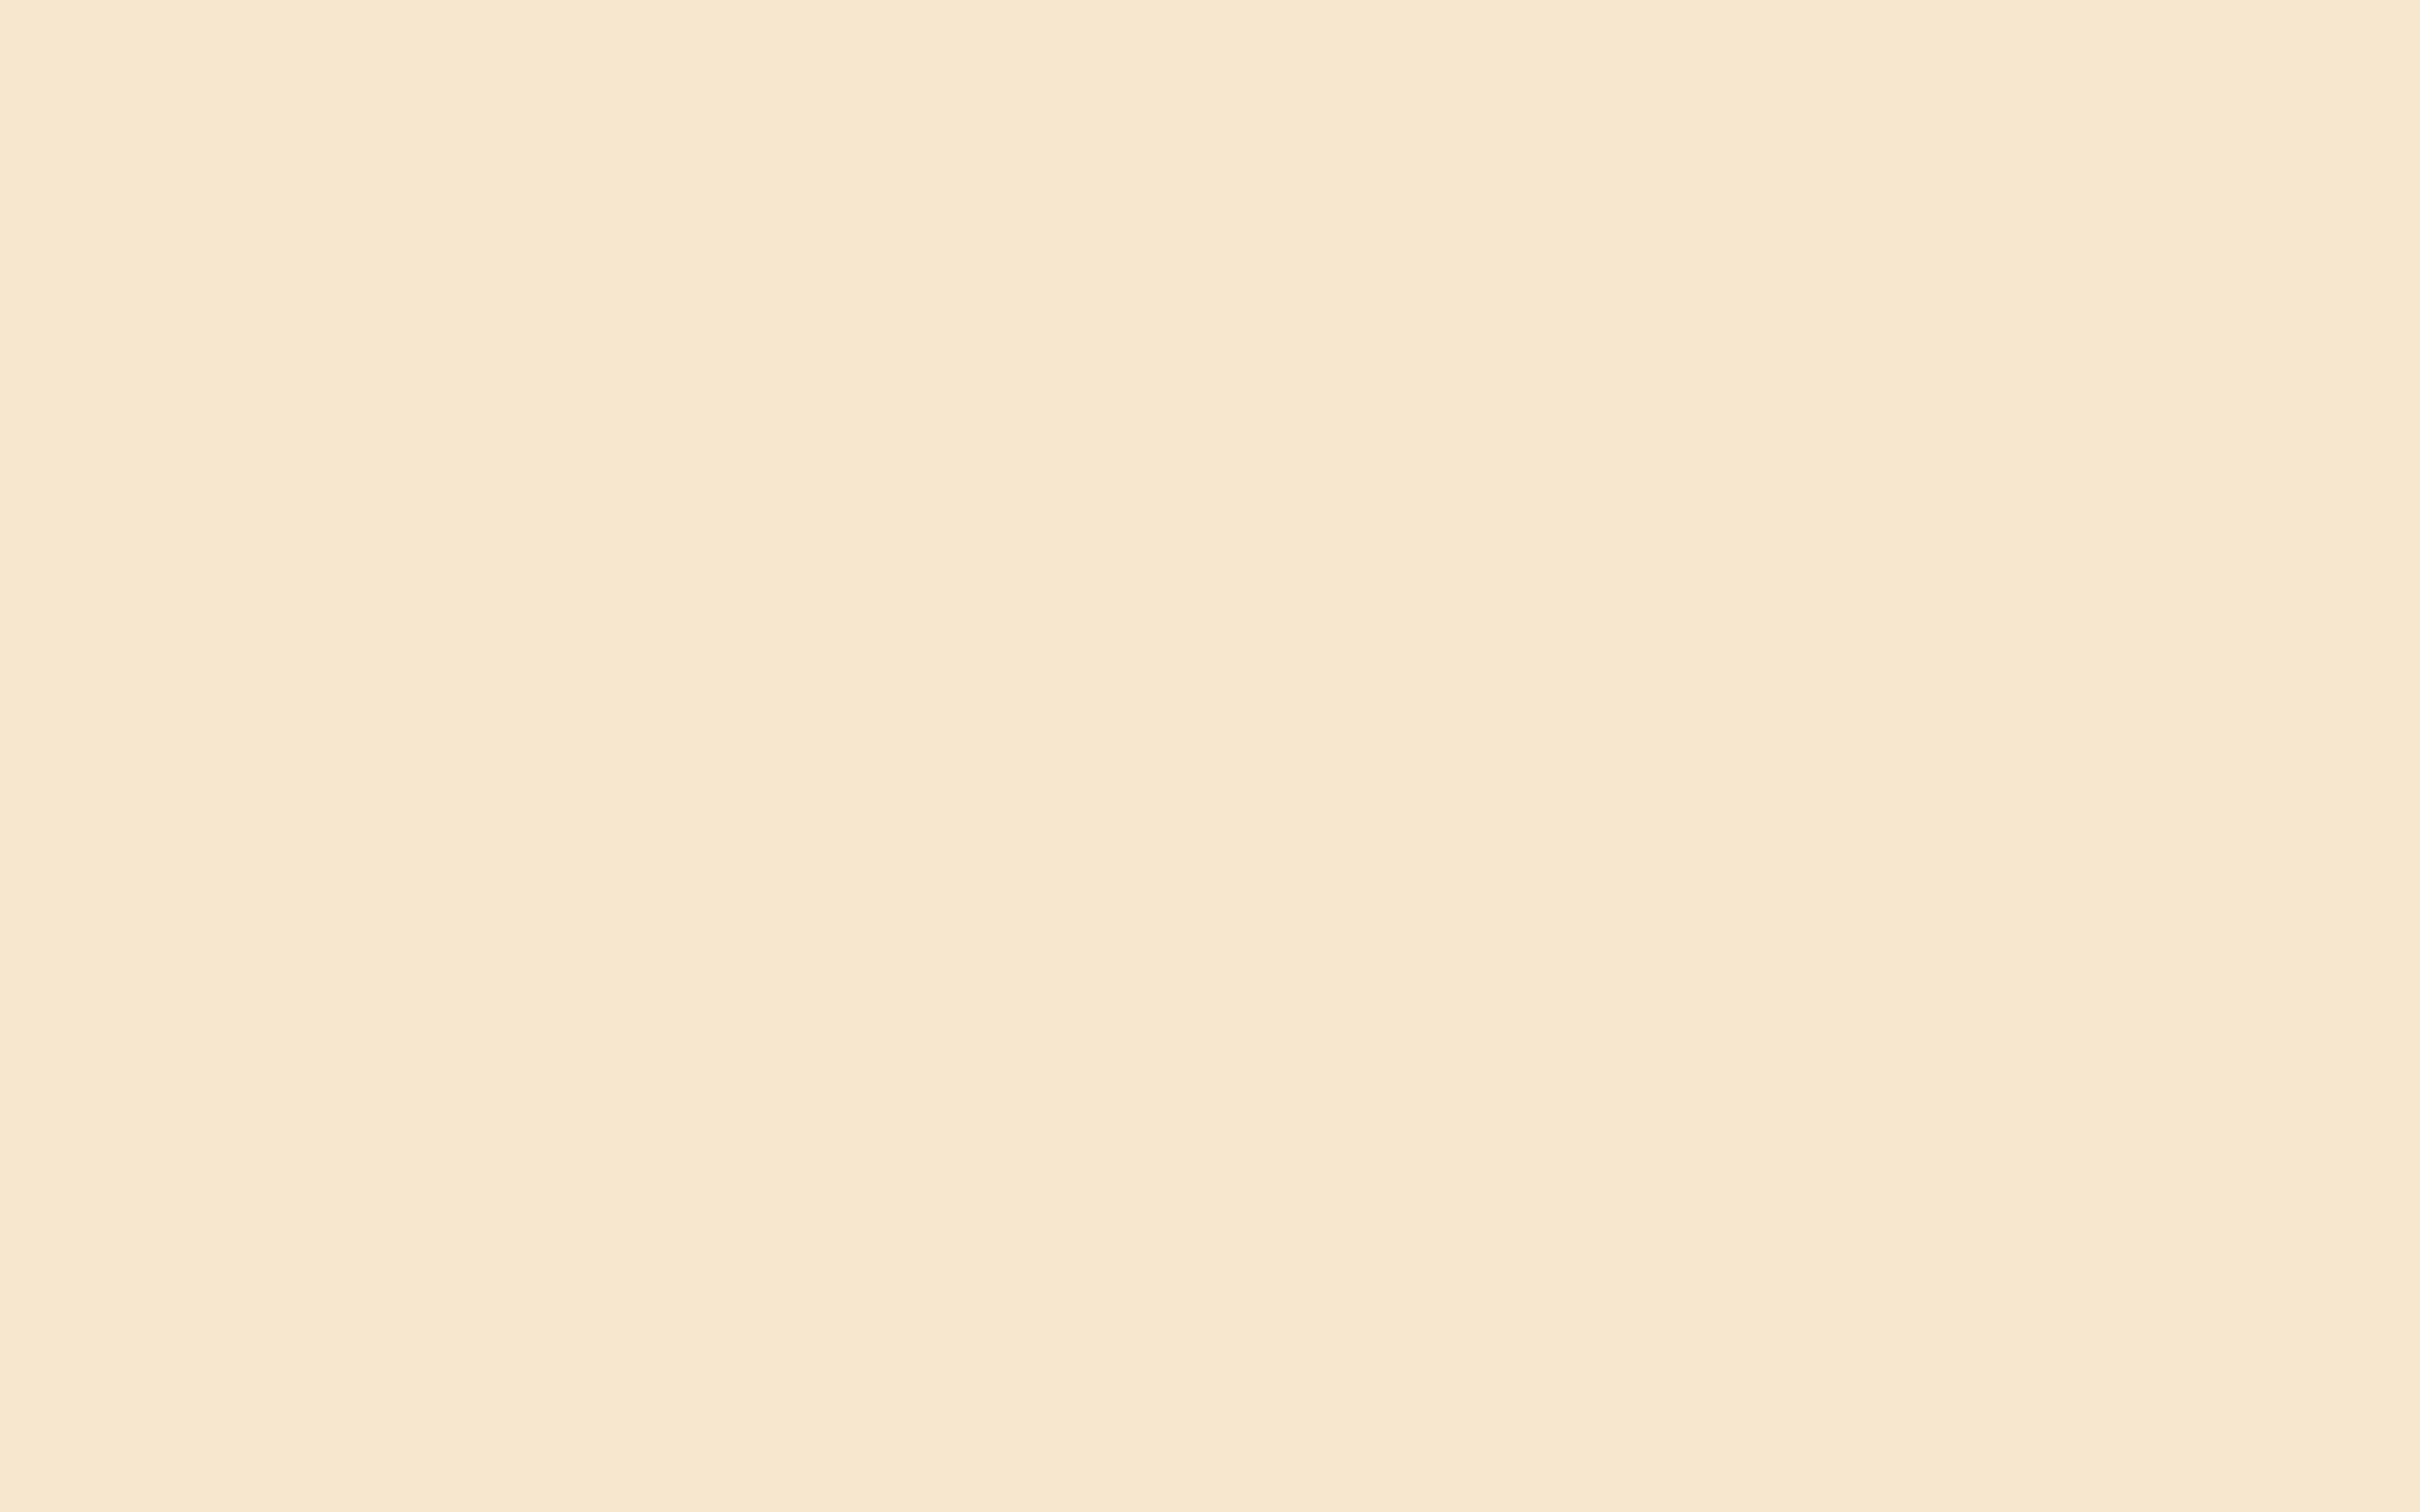 2560x1600 Champagne Solid Color Background